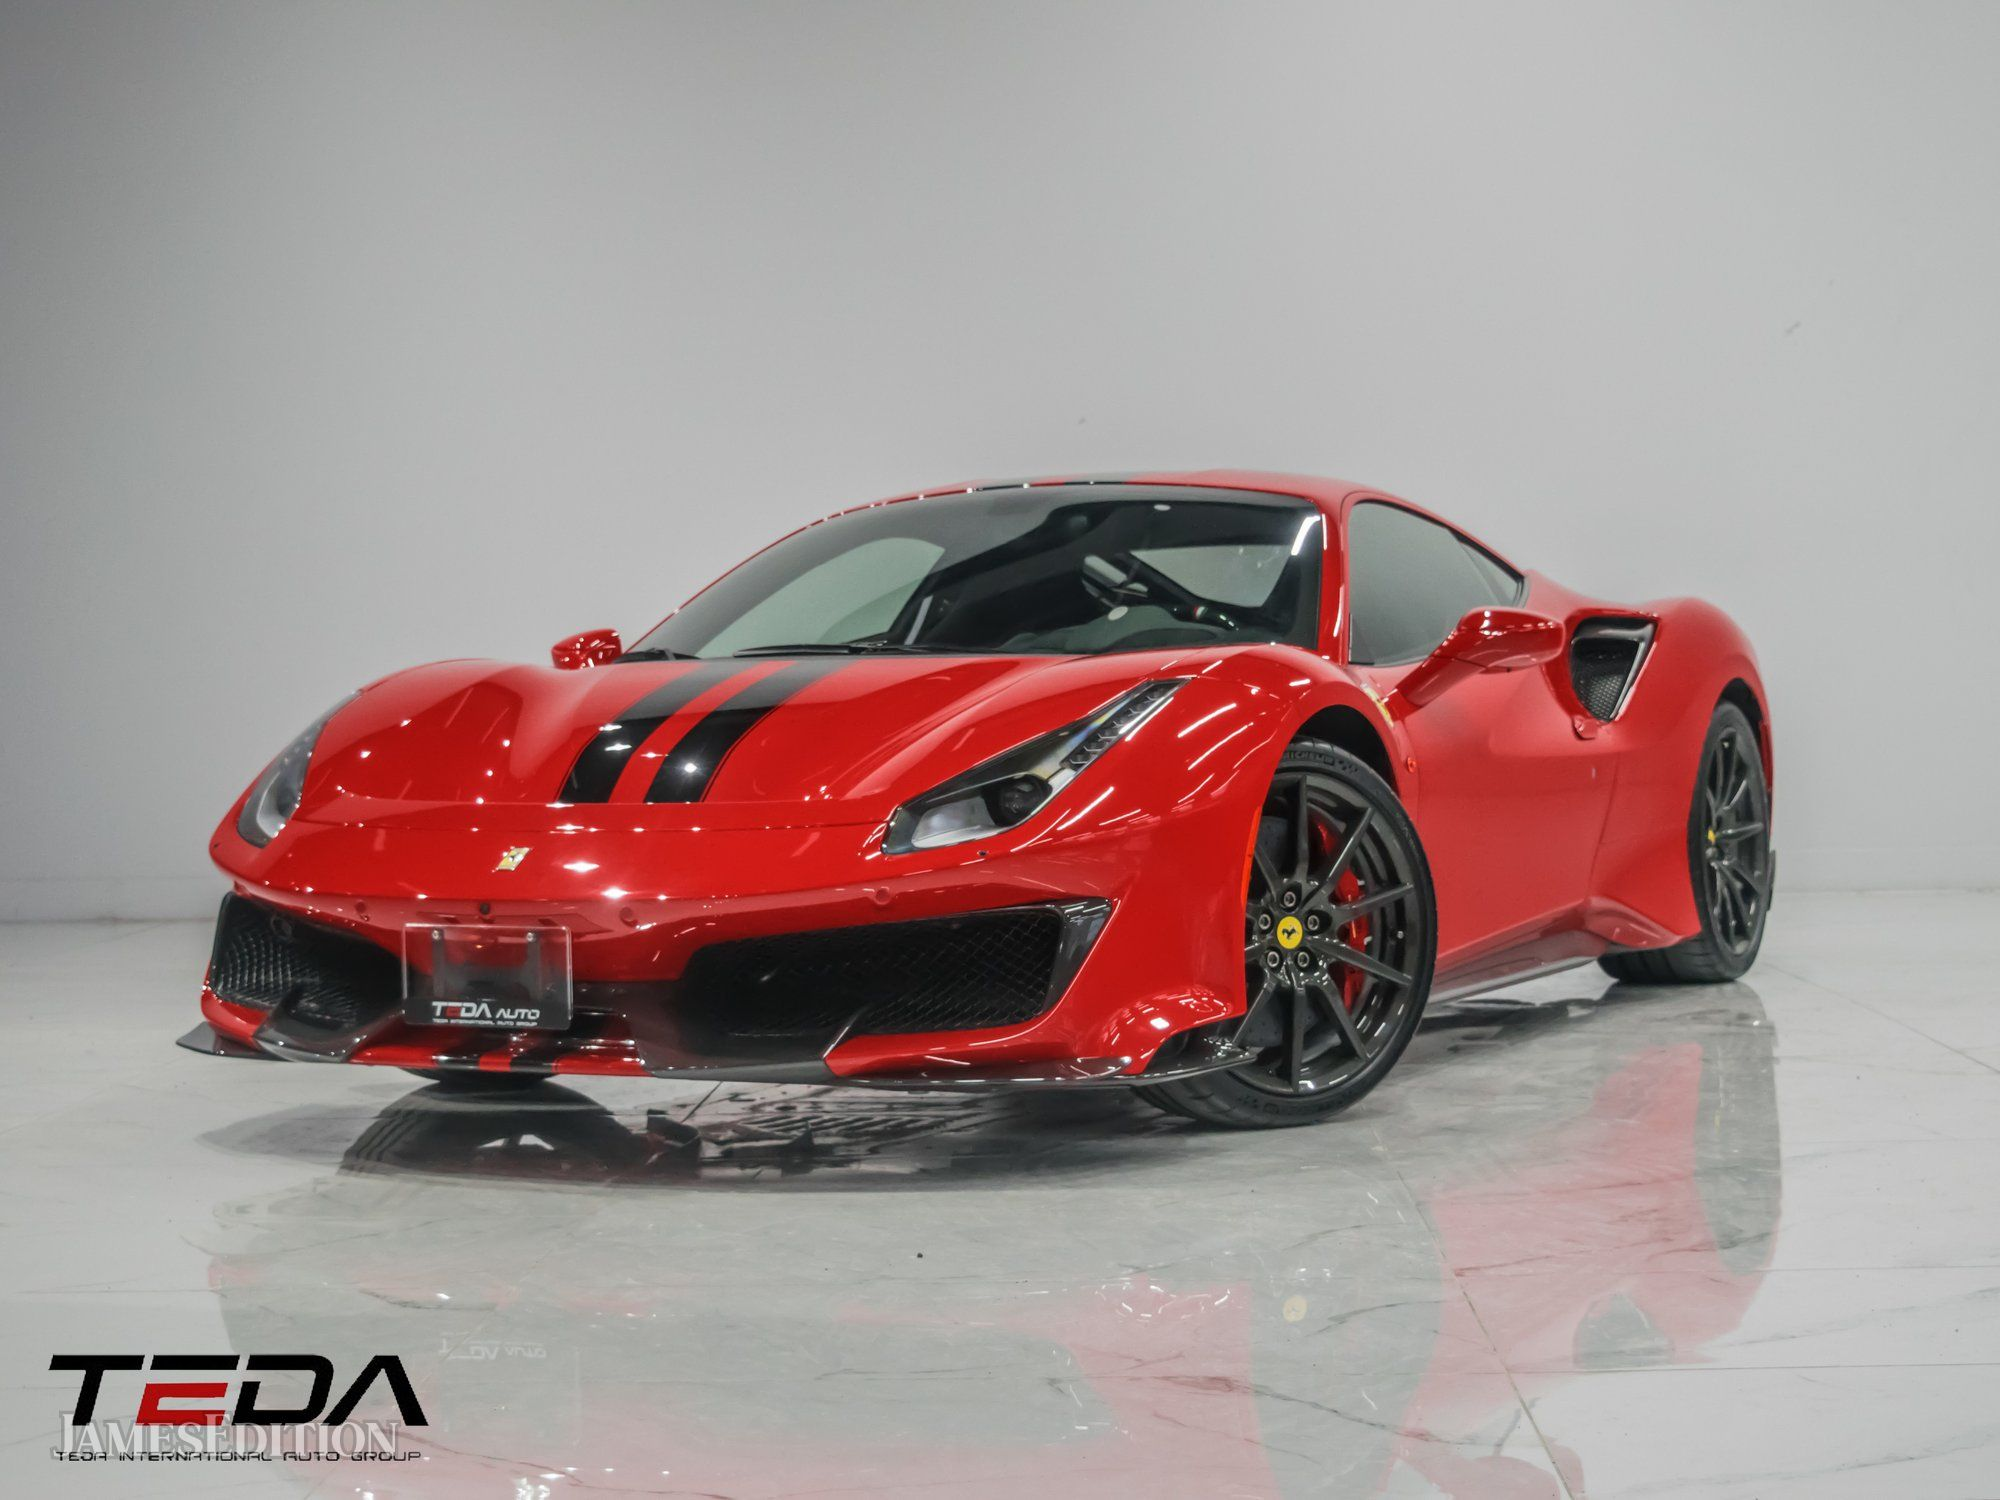 2020 Ferrari 488 Pista In Toronto Canada For Sale 10841341